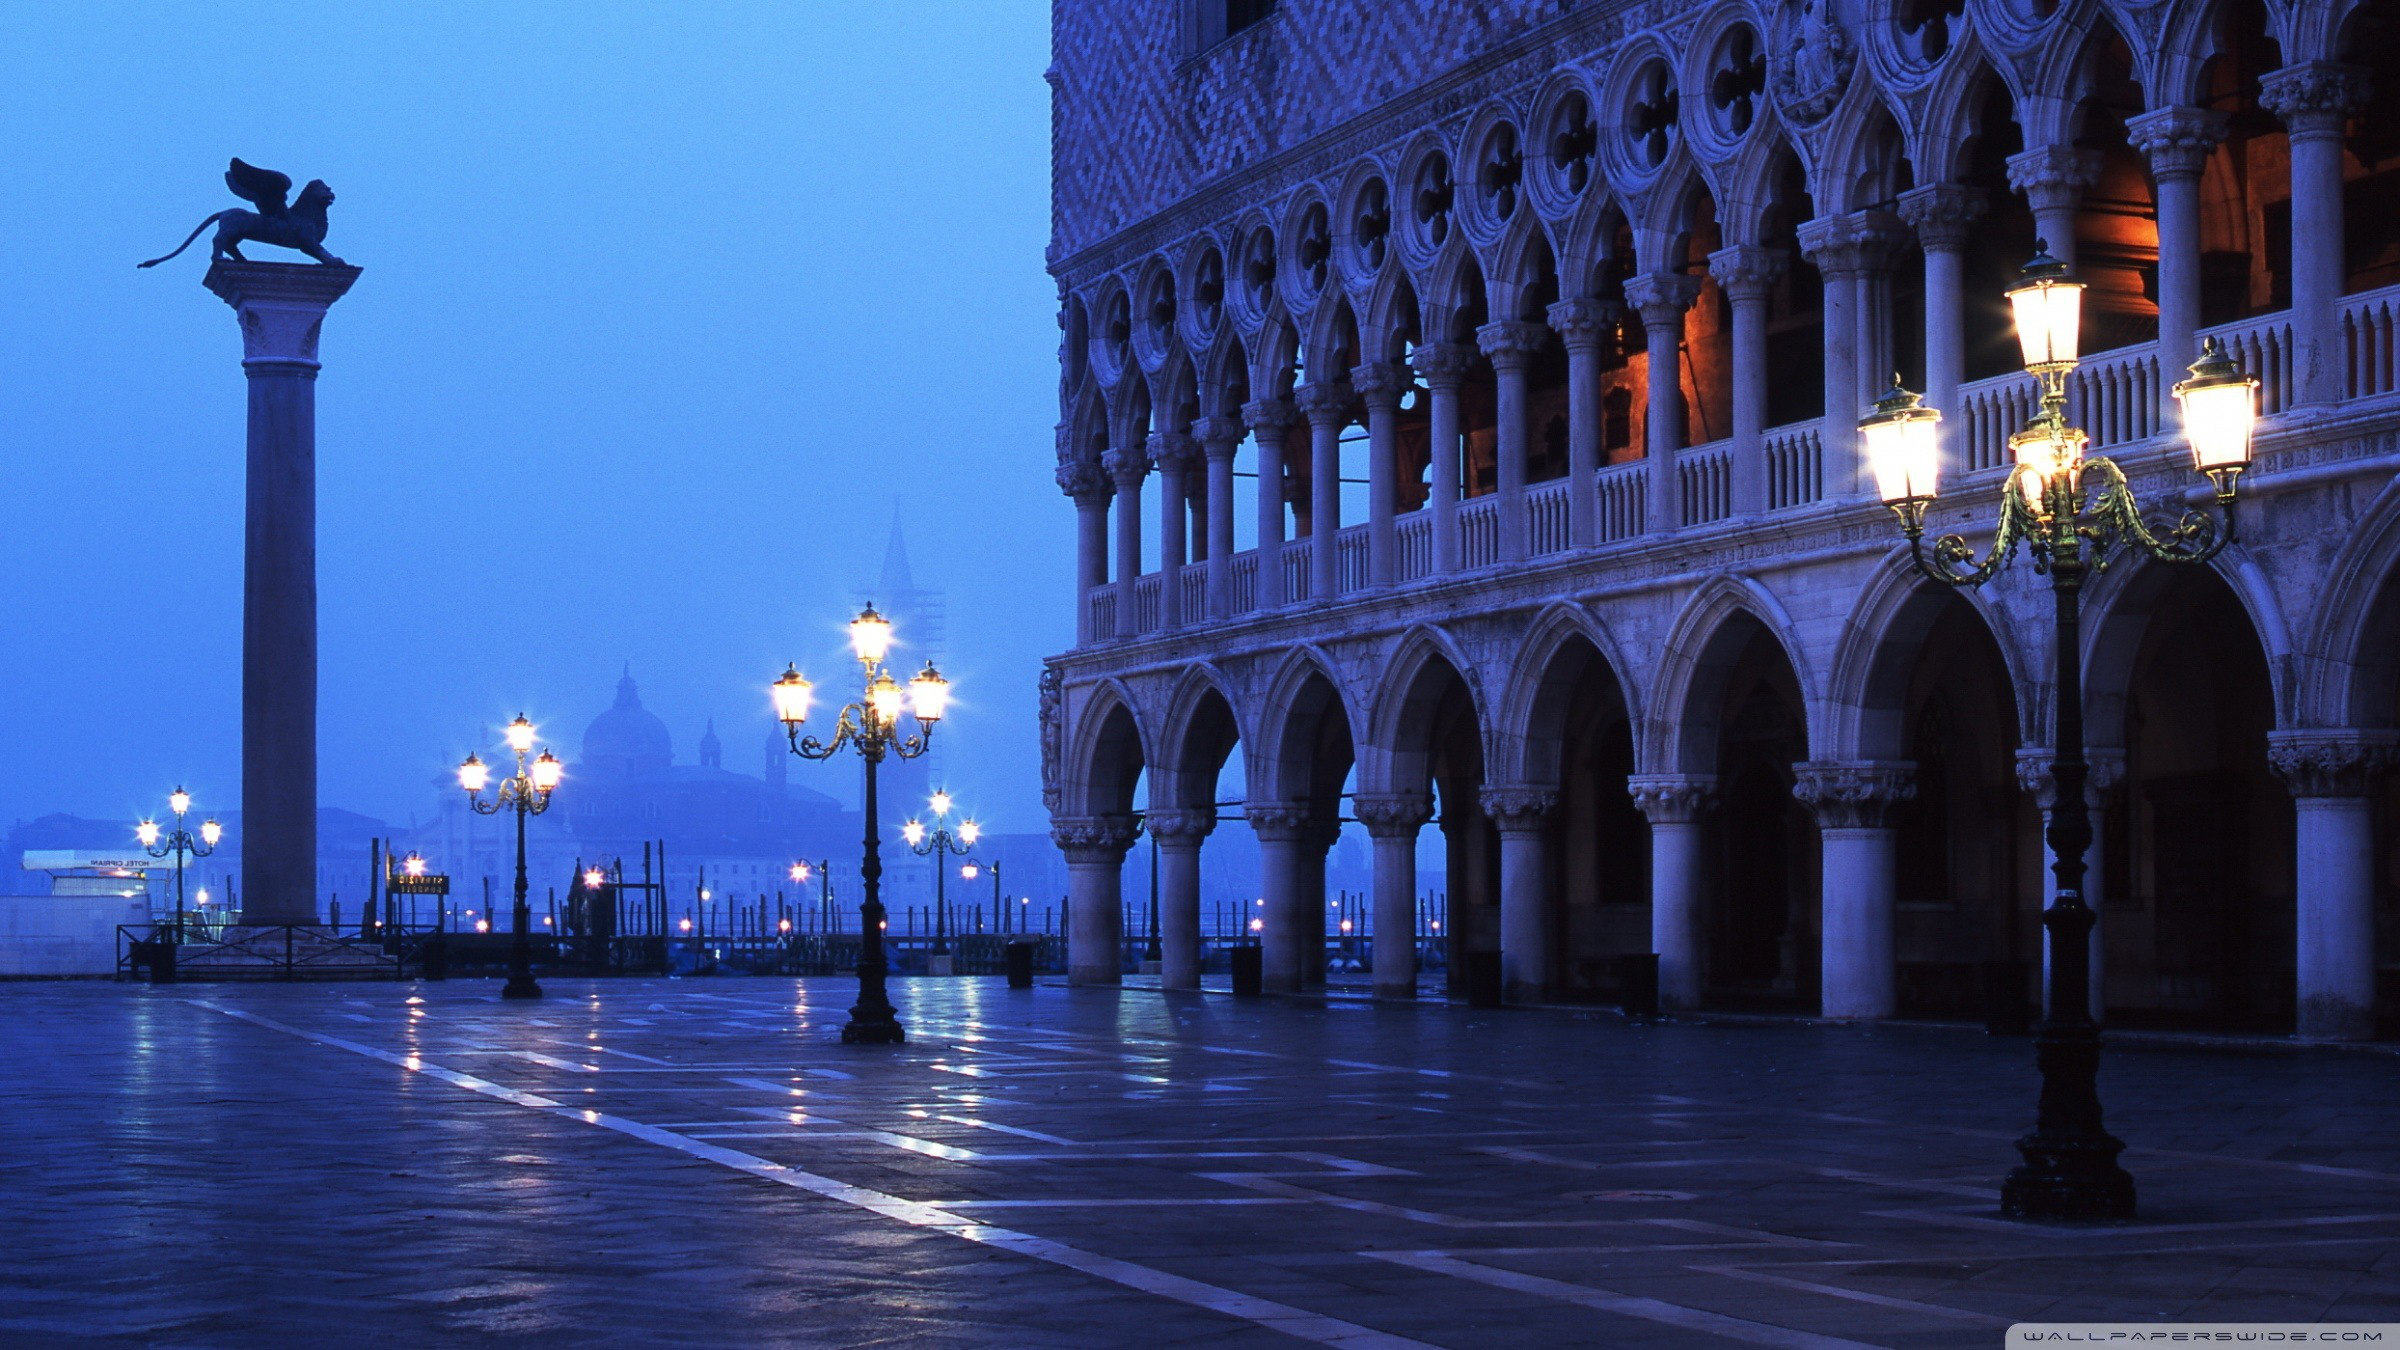 5548136_5834547_3003514_1979754piazza_san_marco-wallpaper-2400x1350